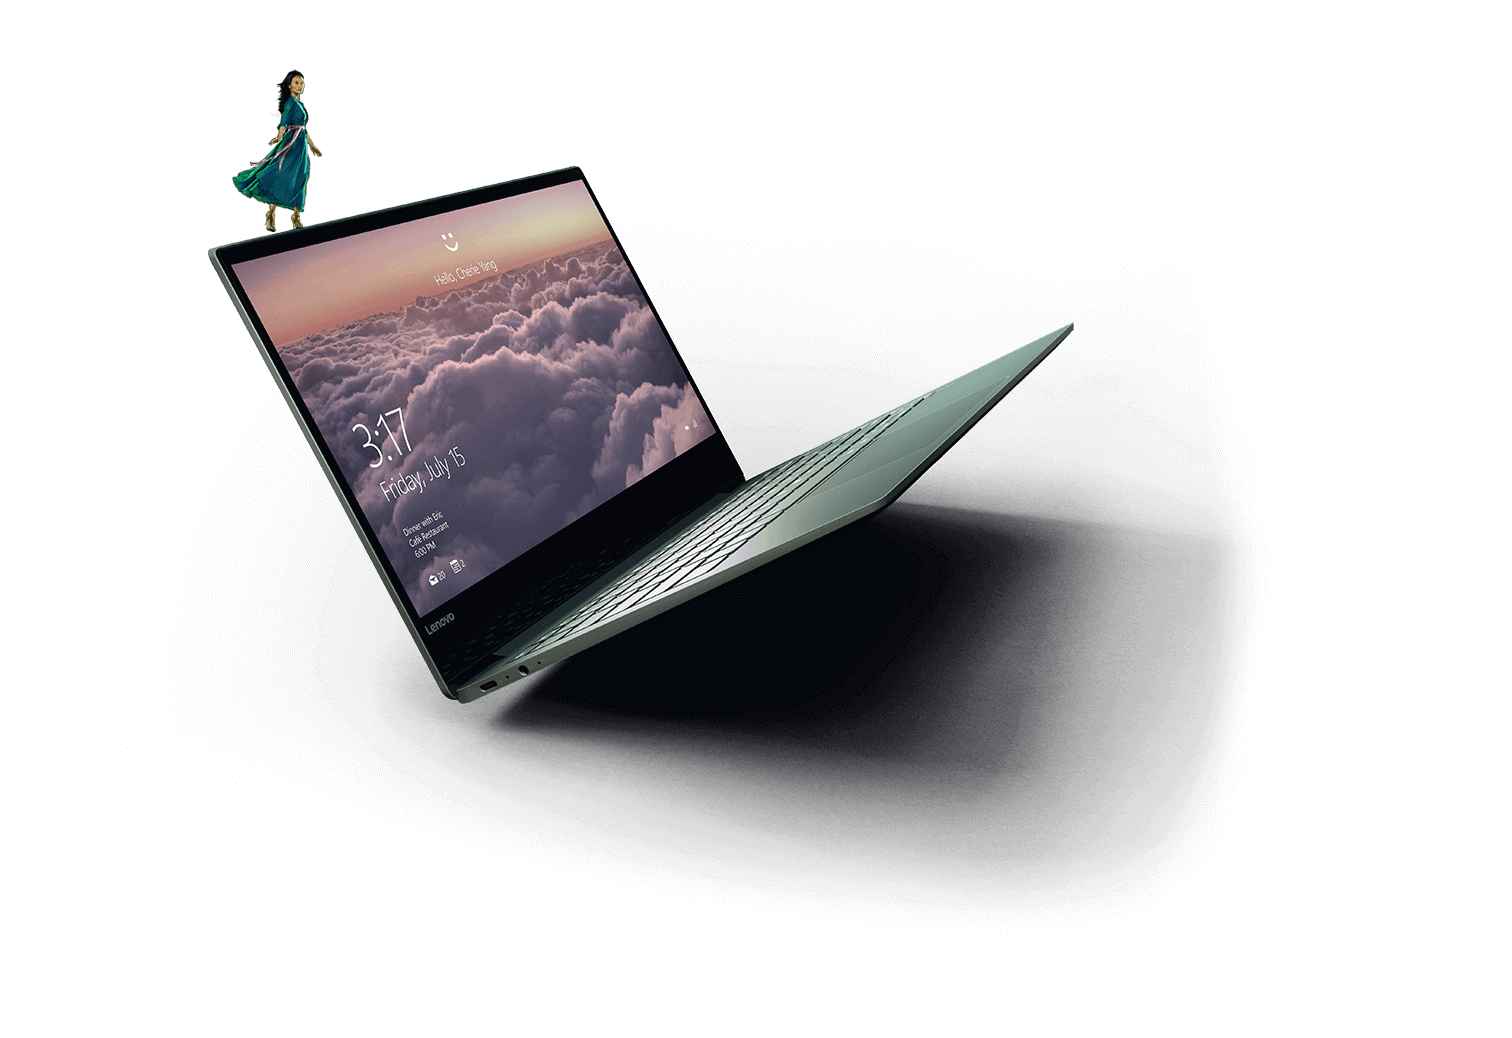 lenovo-yoga-s-series-hero